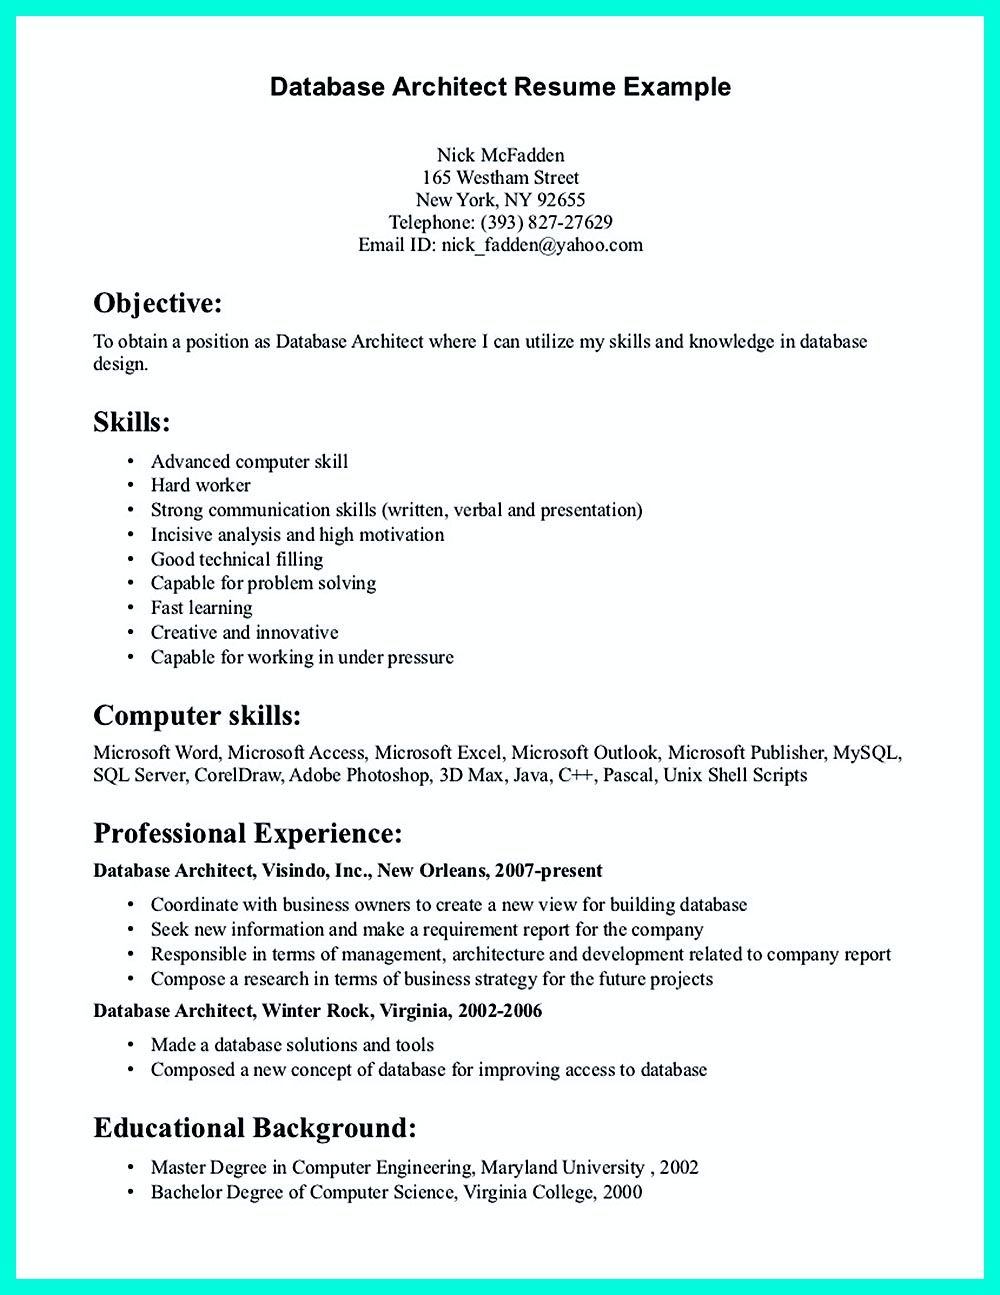 Resume For College Graduate In The Data Architect Resume One Must Describe The Professional